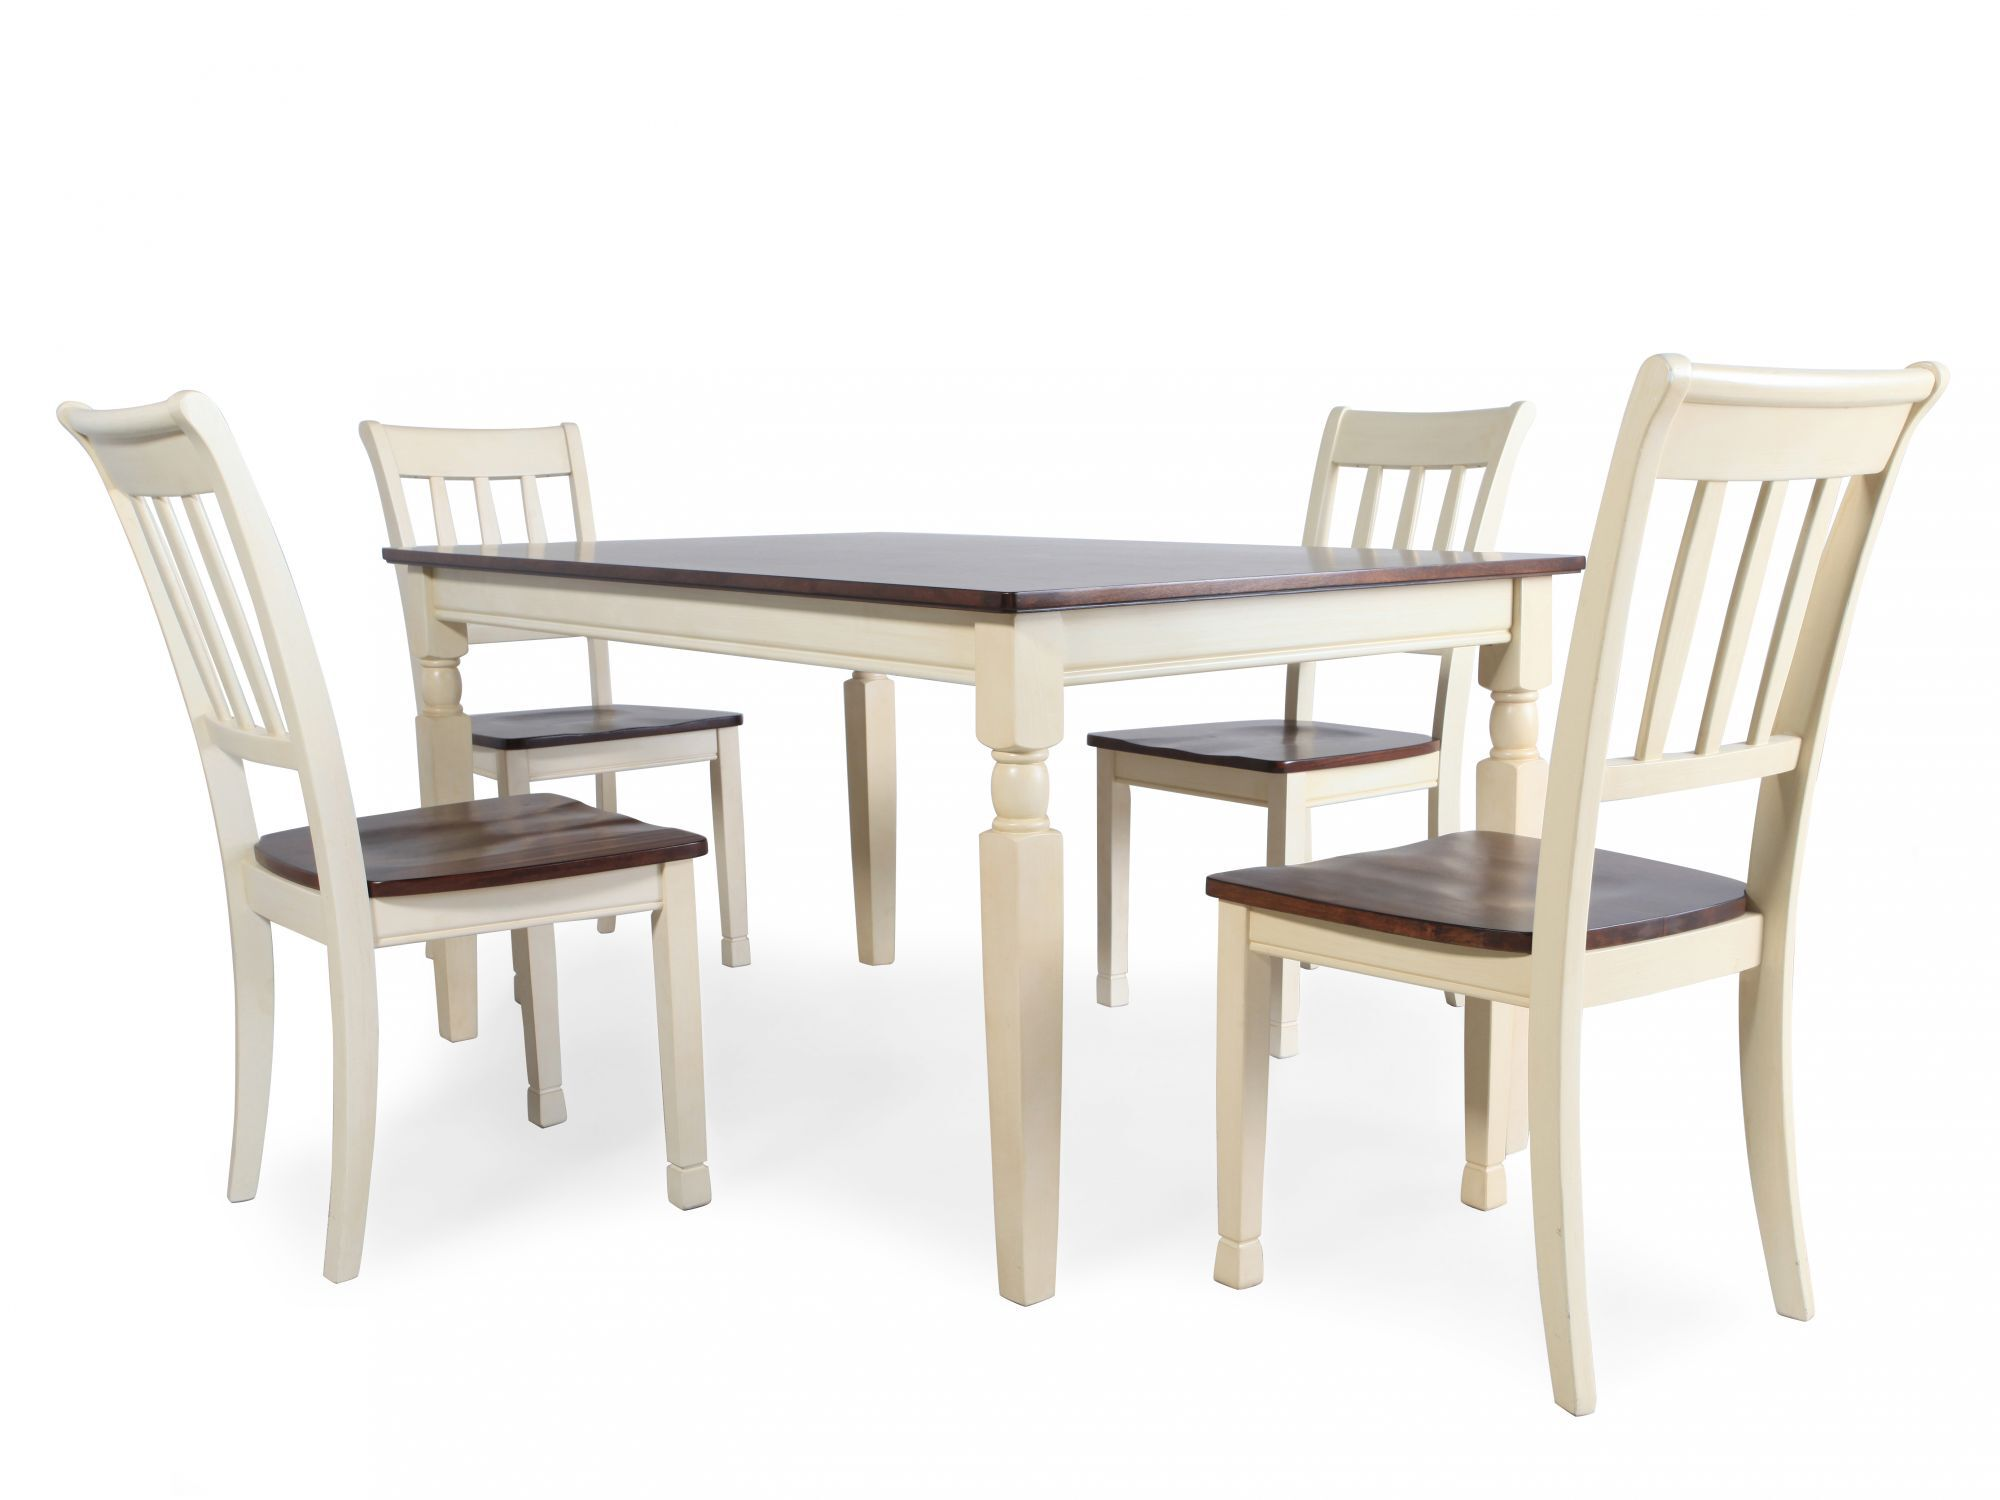 Five Piece Cottage Dining Set In Buttermilk Mathis